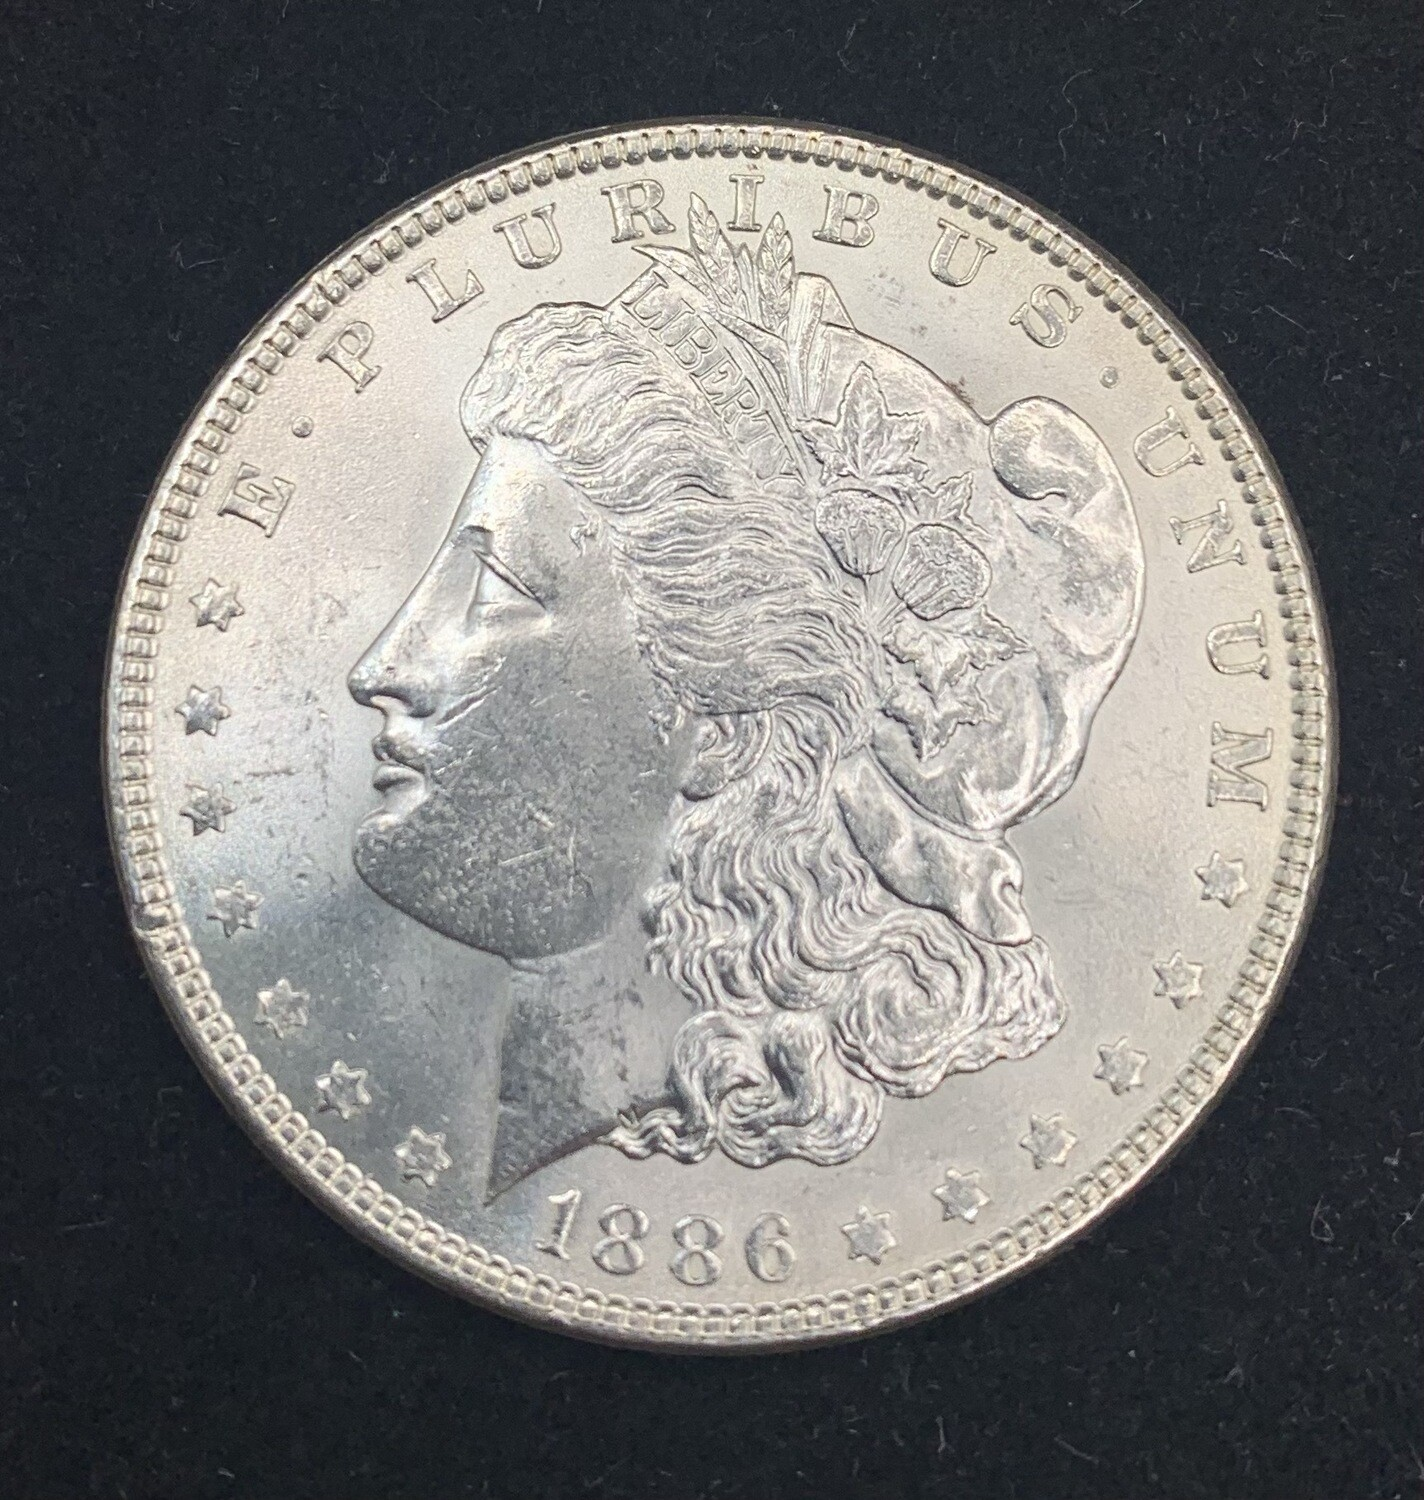 1886 Morgan Silver Dollar - Philadelphia Mint